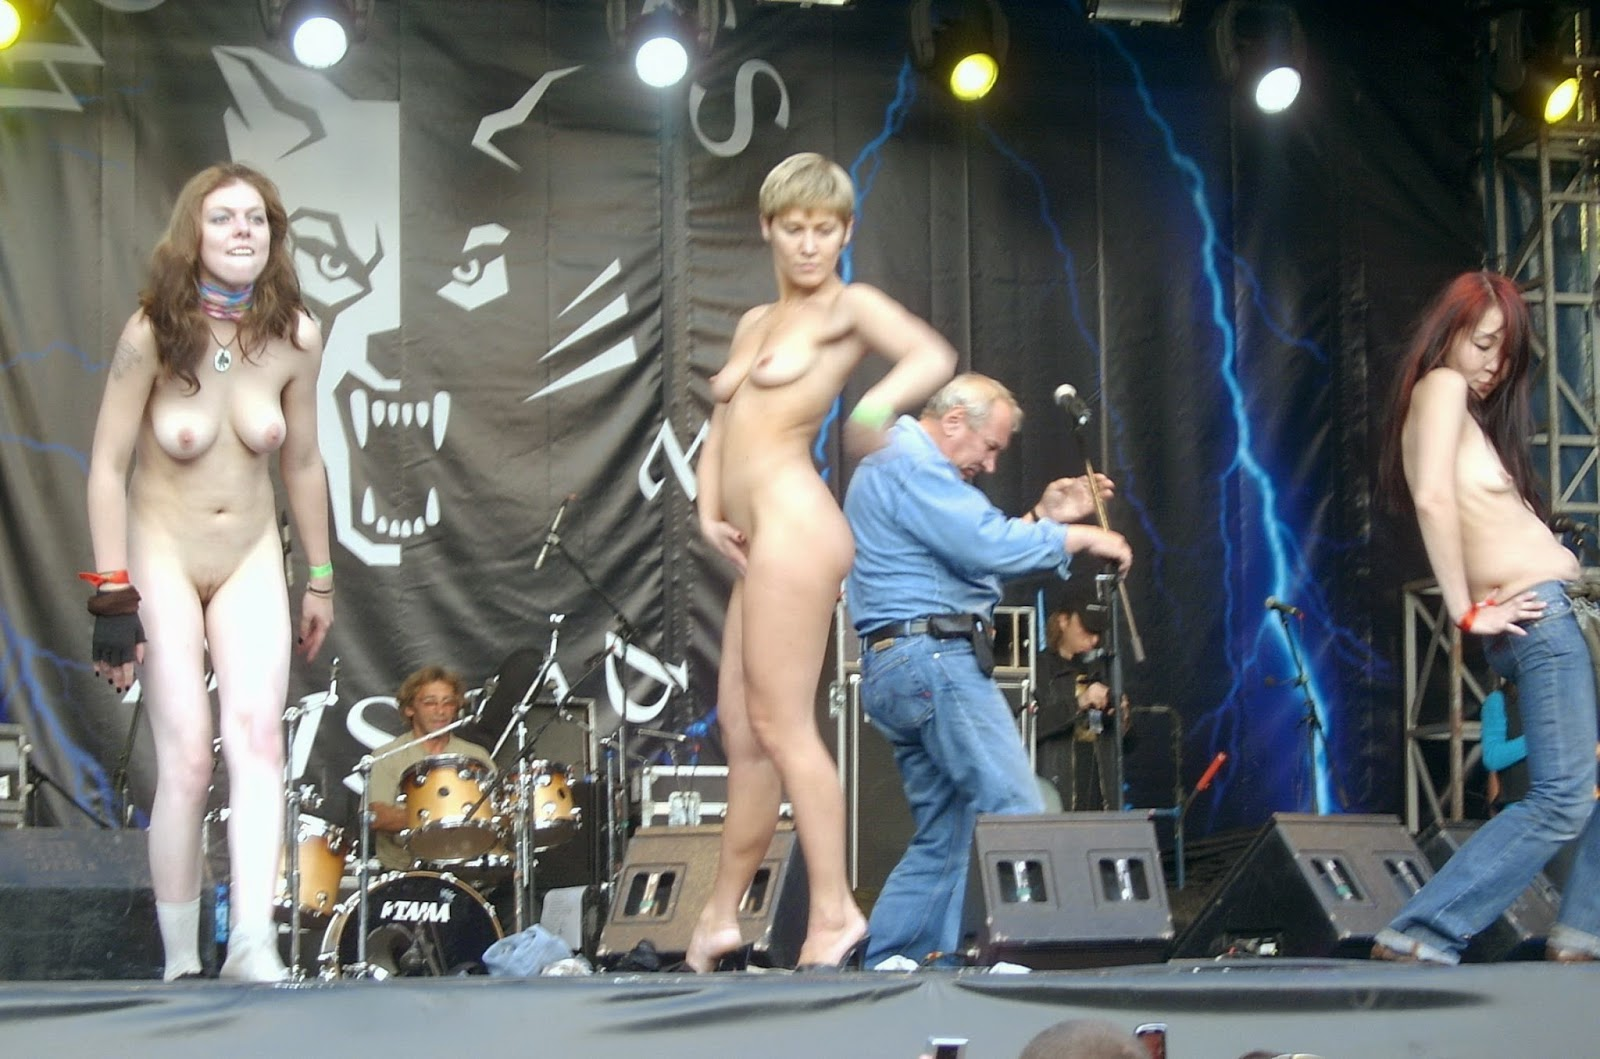 naked at a rock concert